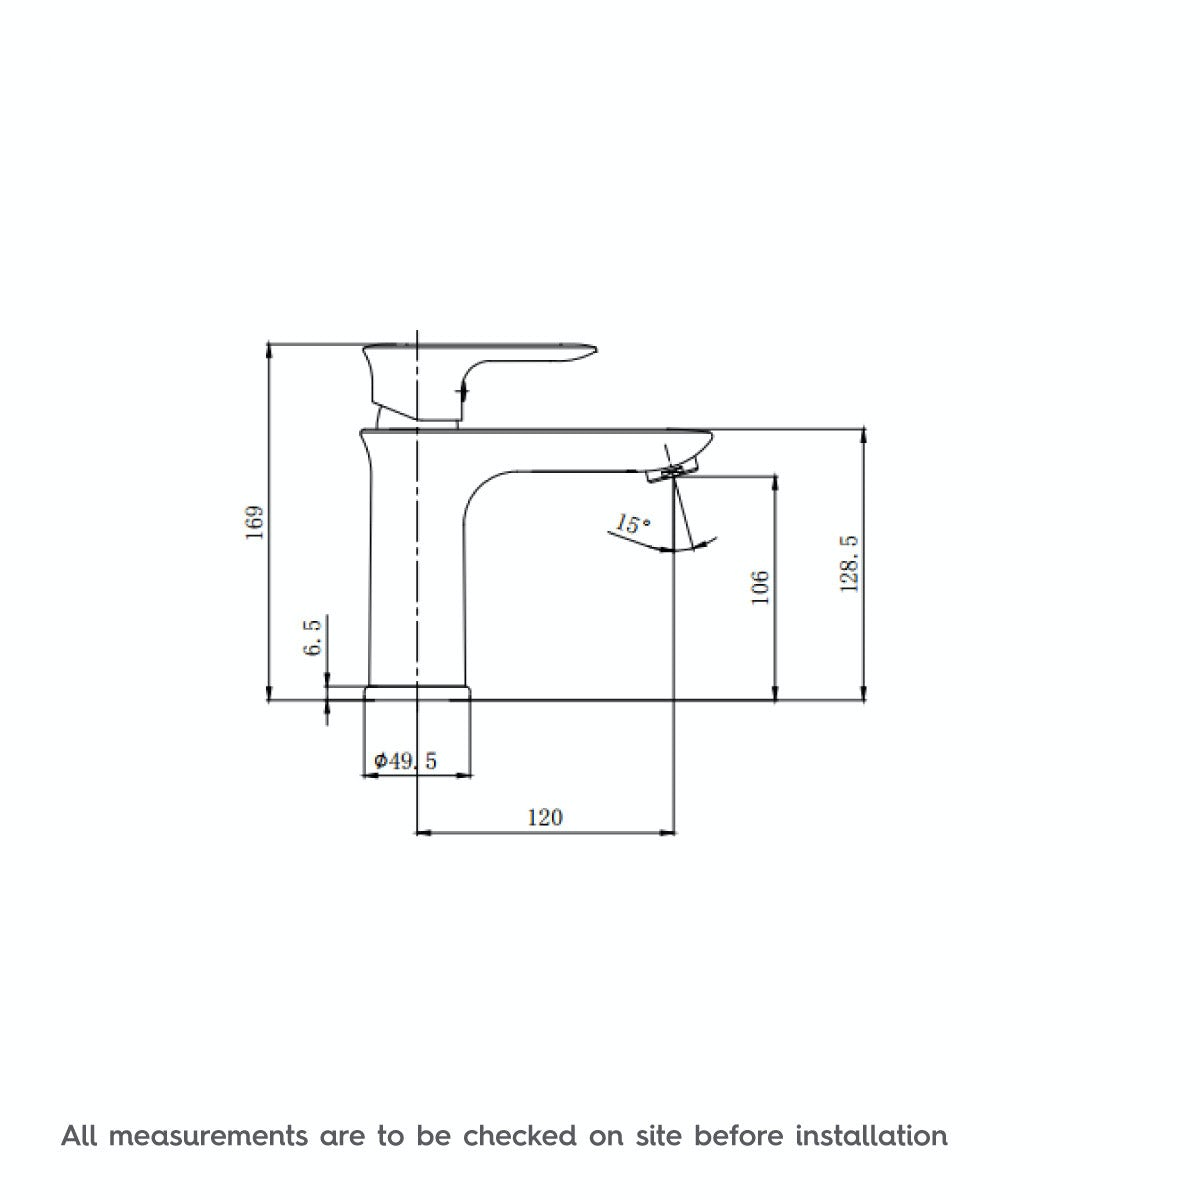 Dimensions for Orchard Cleanse basin mixer tap